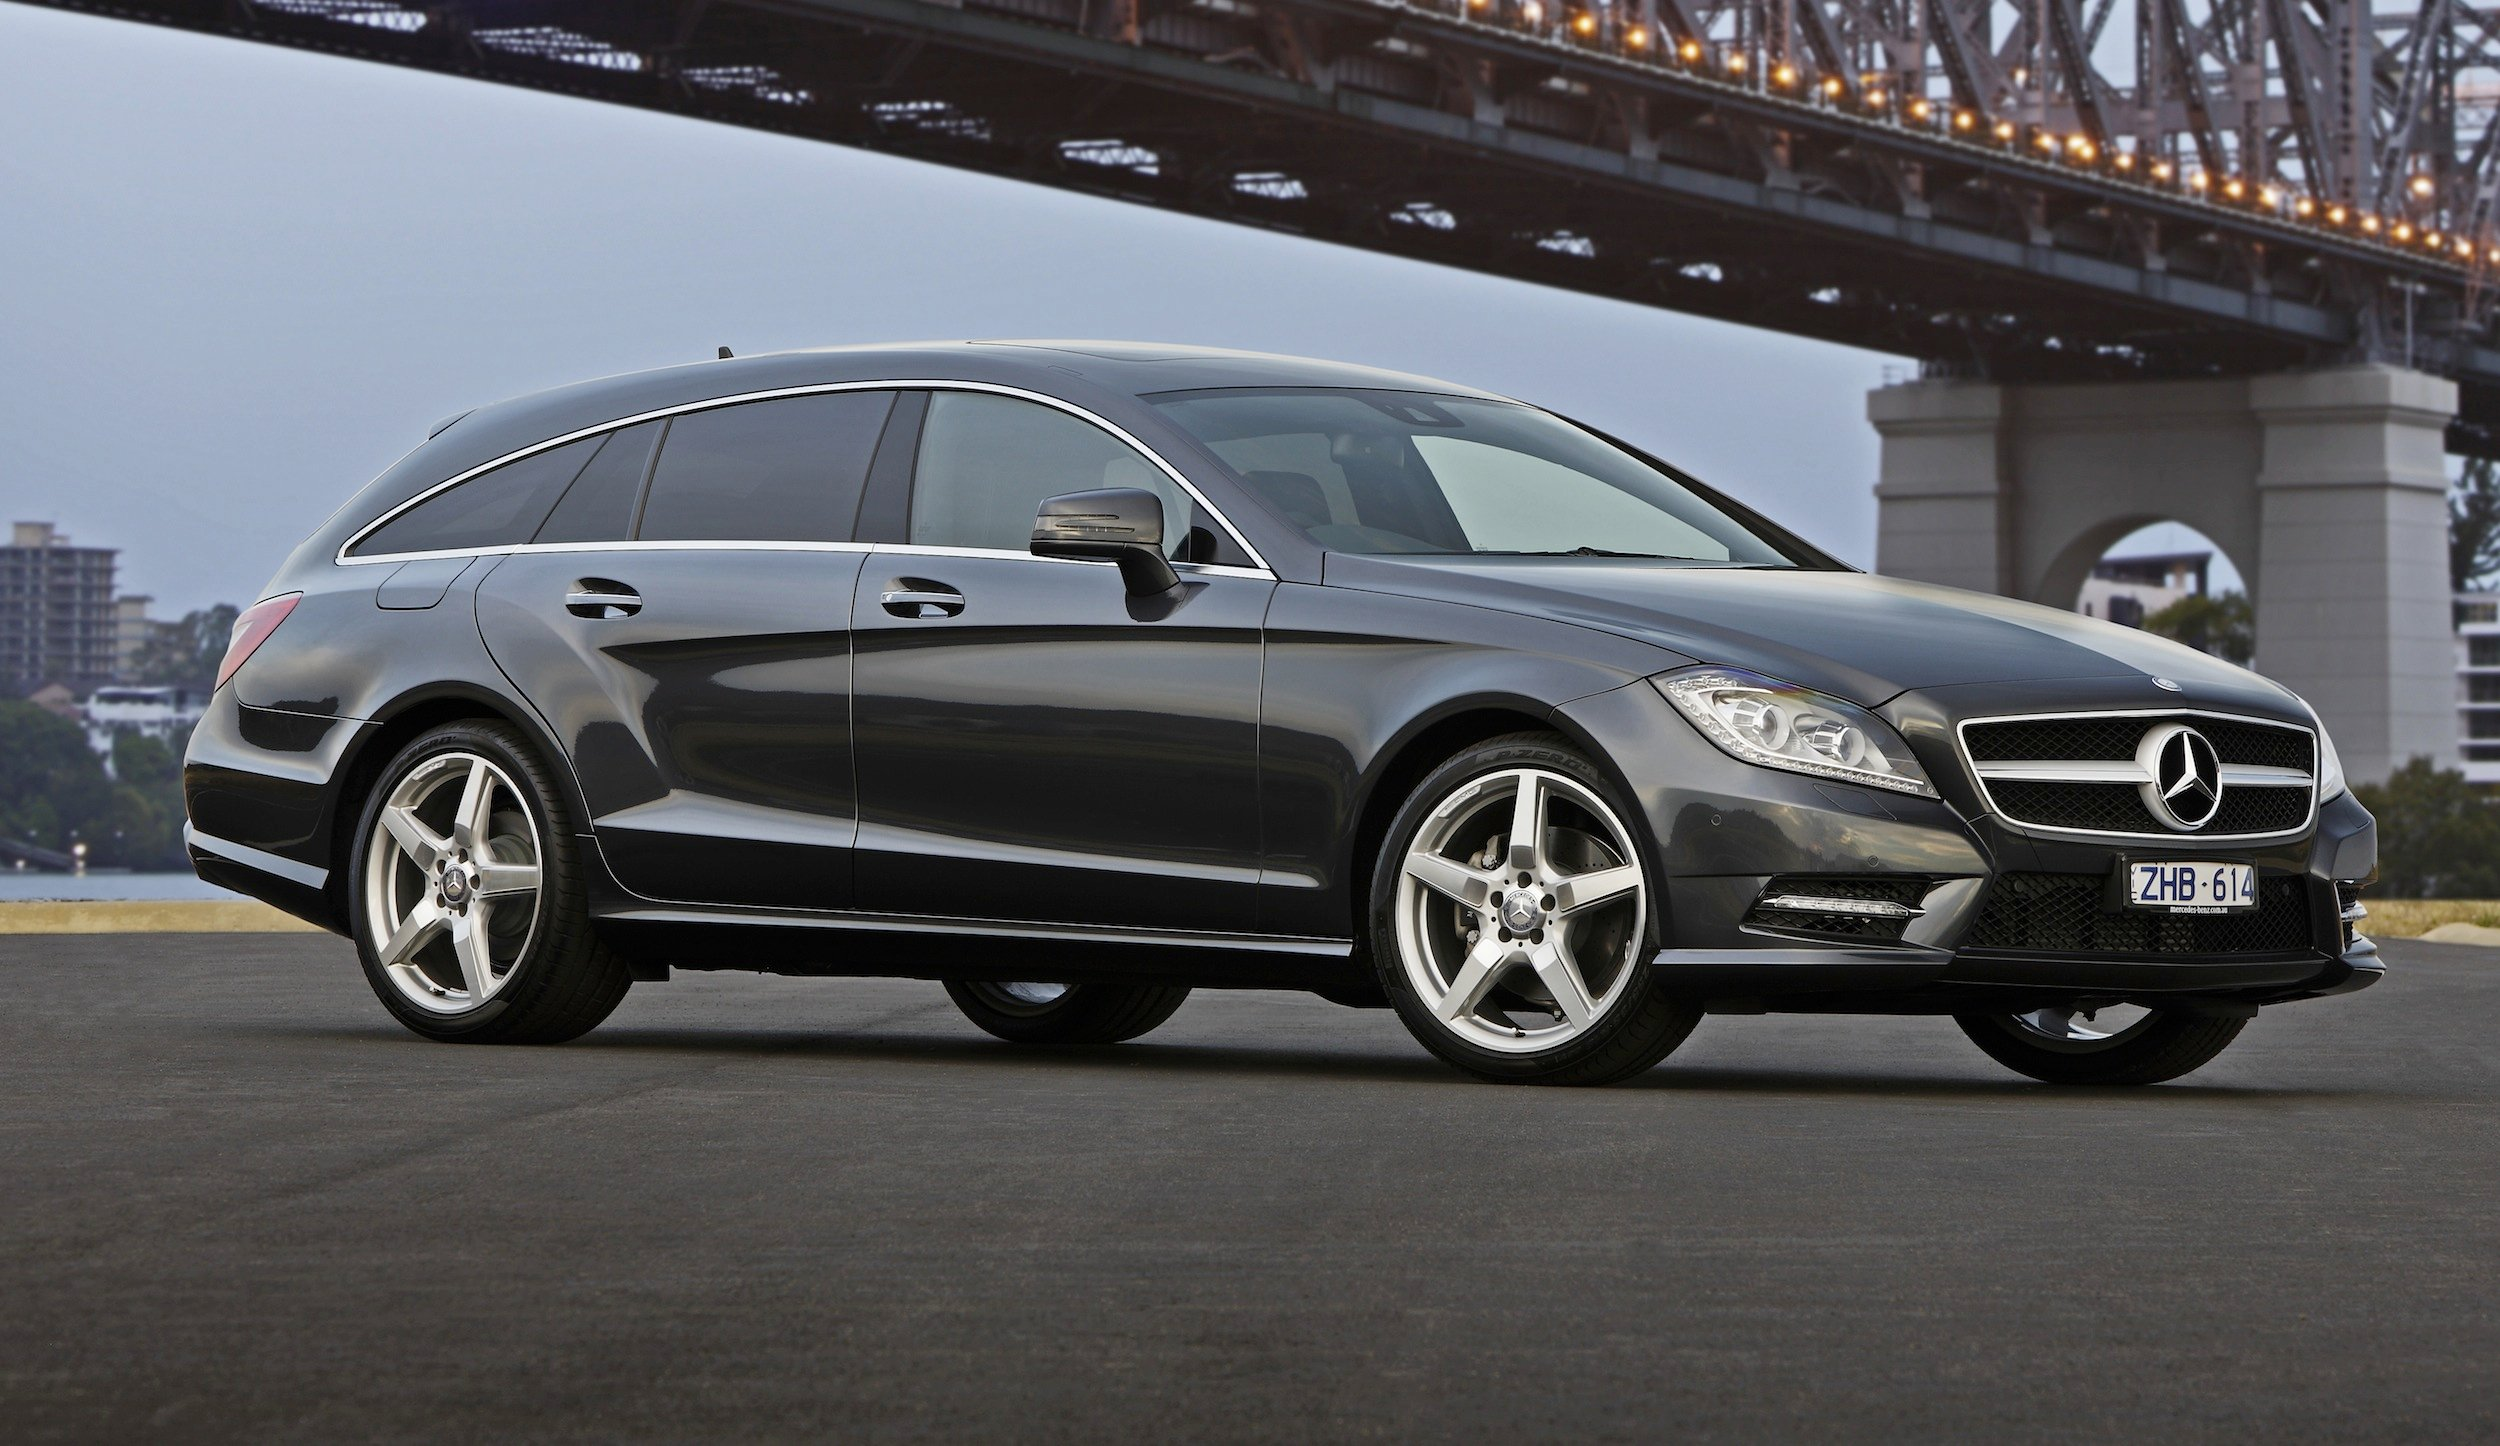 Mercedes benz cls350 shooting brake review caradvice for Mercedes benz cls 250 price